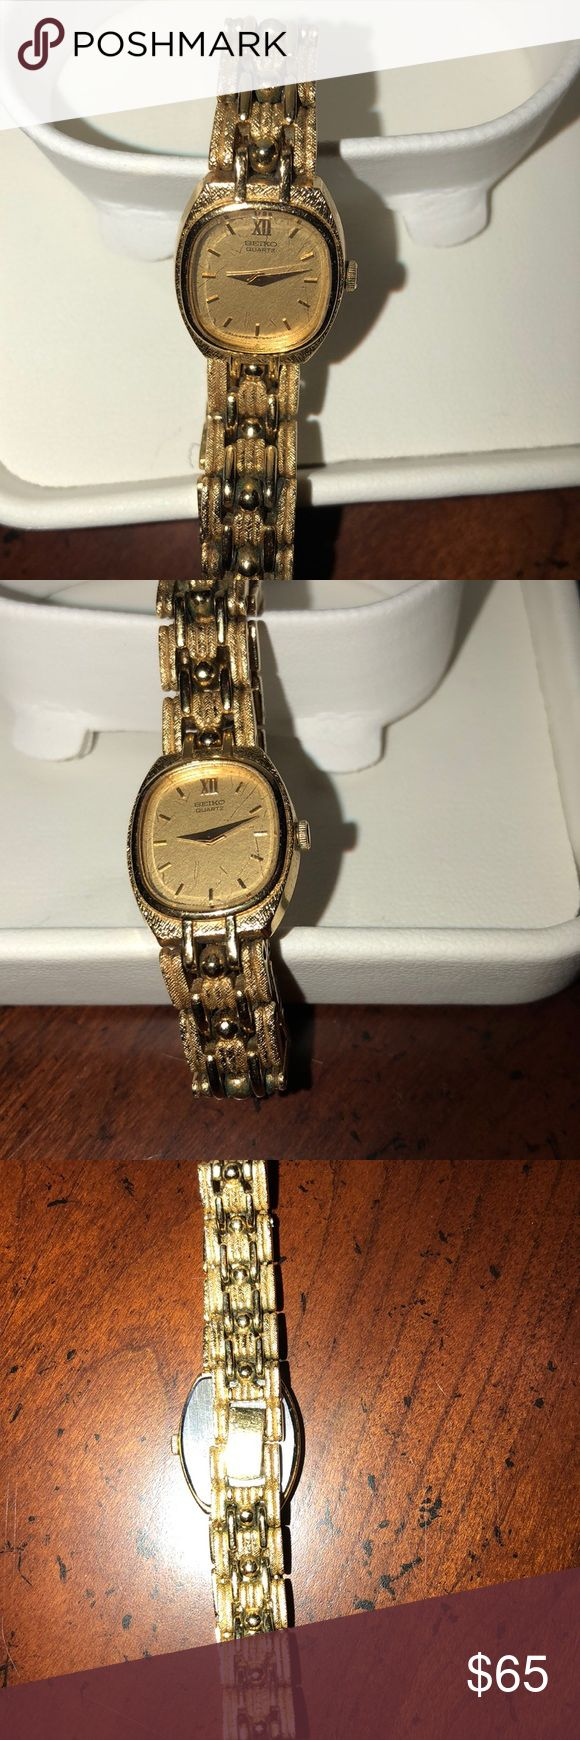 Seiko quartz ladies watch Seiko quartz ladies gold watch, very beautiful and in excellent condition, needs battery otherwise works great!!  Stainless steel back.  Fits small wrist. Seiko Accessories Watches